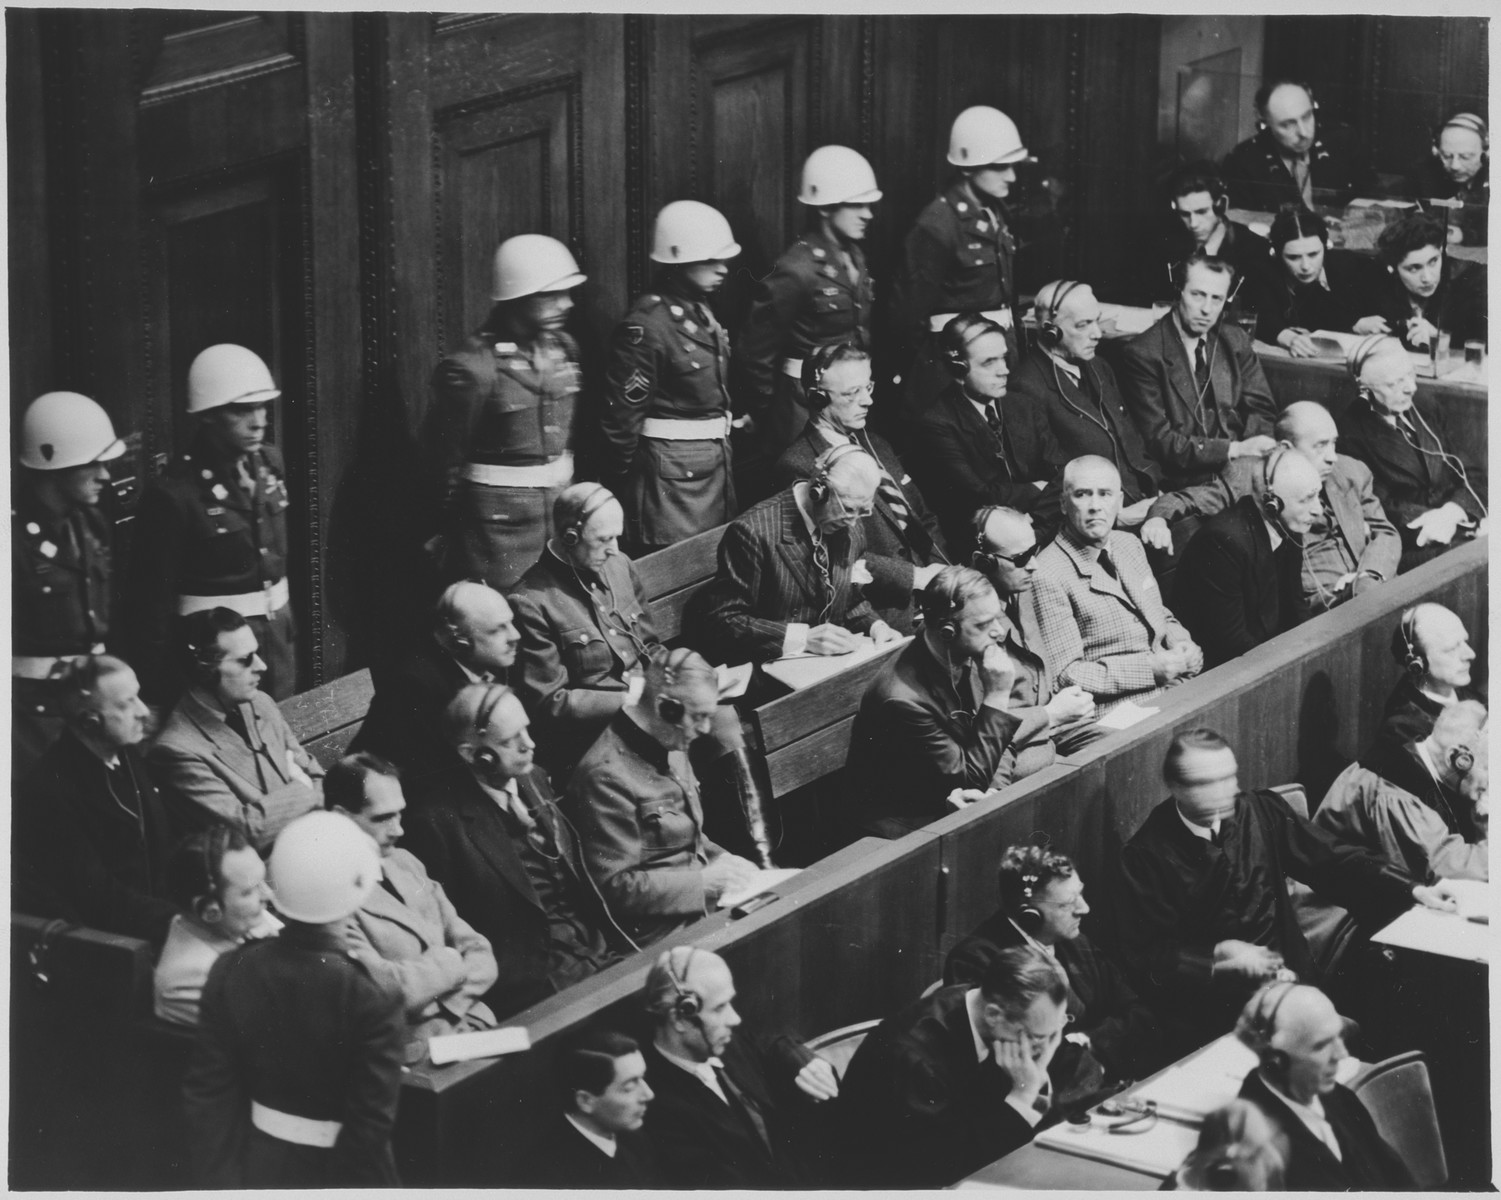 View of the defendants dock at the International Military Tribunal trial of war criminals at Nuremberg.  Seated in front of the defendants are the translators.  Mr. Walter Seligson, translation supervisor (a German Jew owho immigrated first to Palestine and then to the United States) is seated fourth from the left.